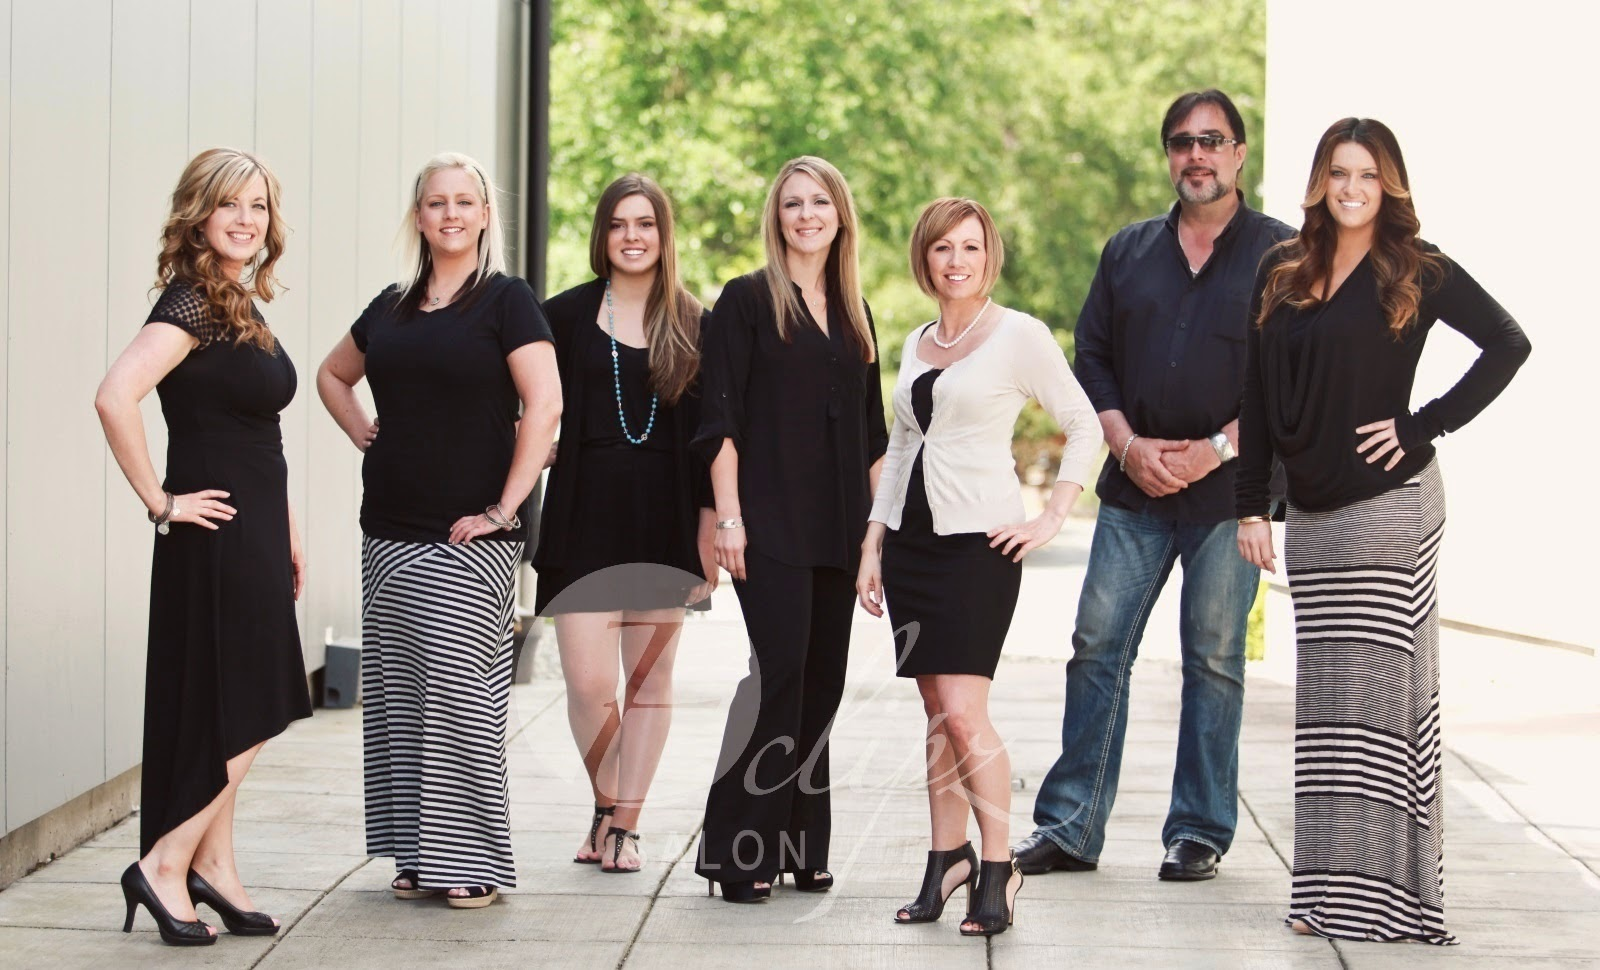 Bothell WA Eclipz Salon Team